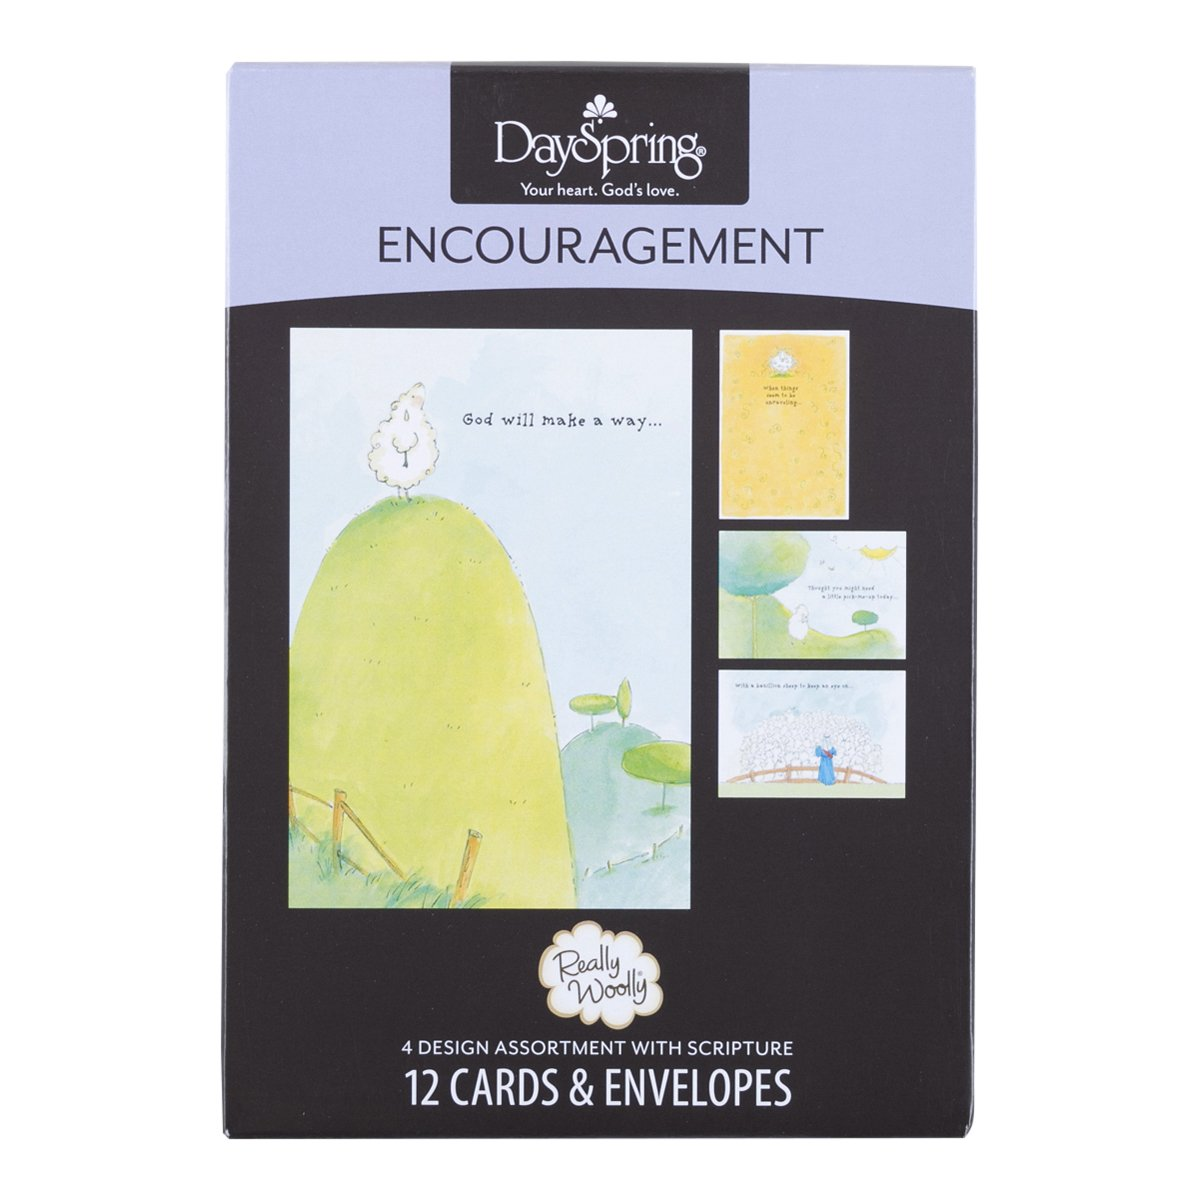 Amazon encouragement inspirational boxed cards really amazon encouragement inspirational boxed cards really woolly home and garden products office products kristyandbryce Image collections